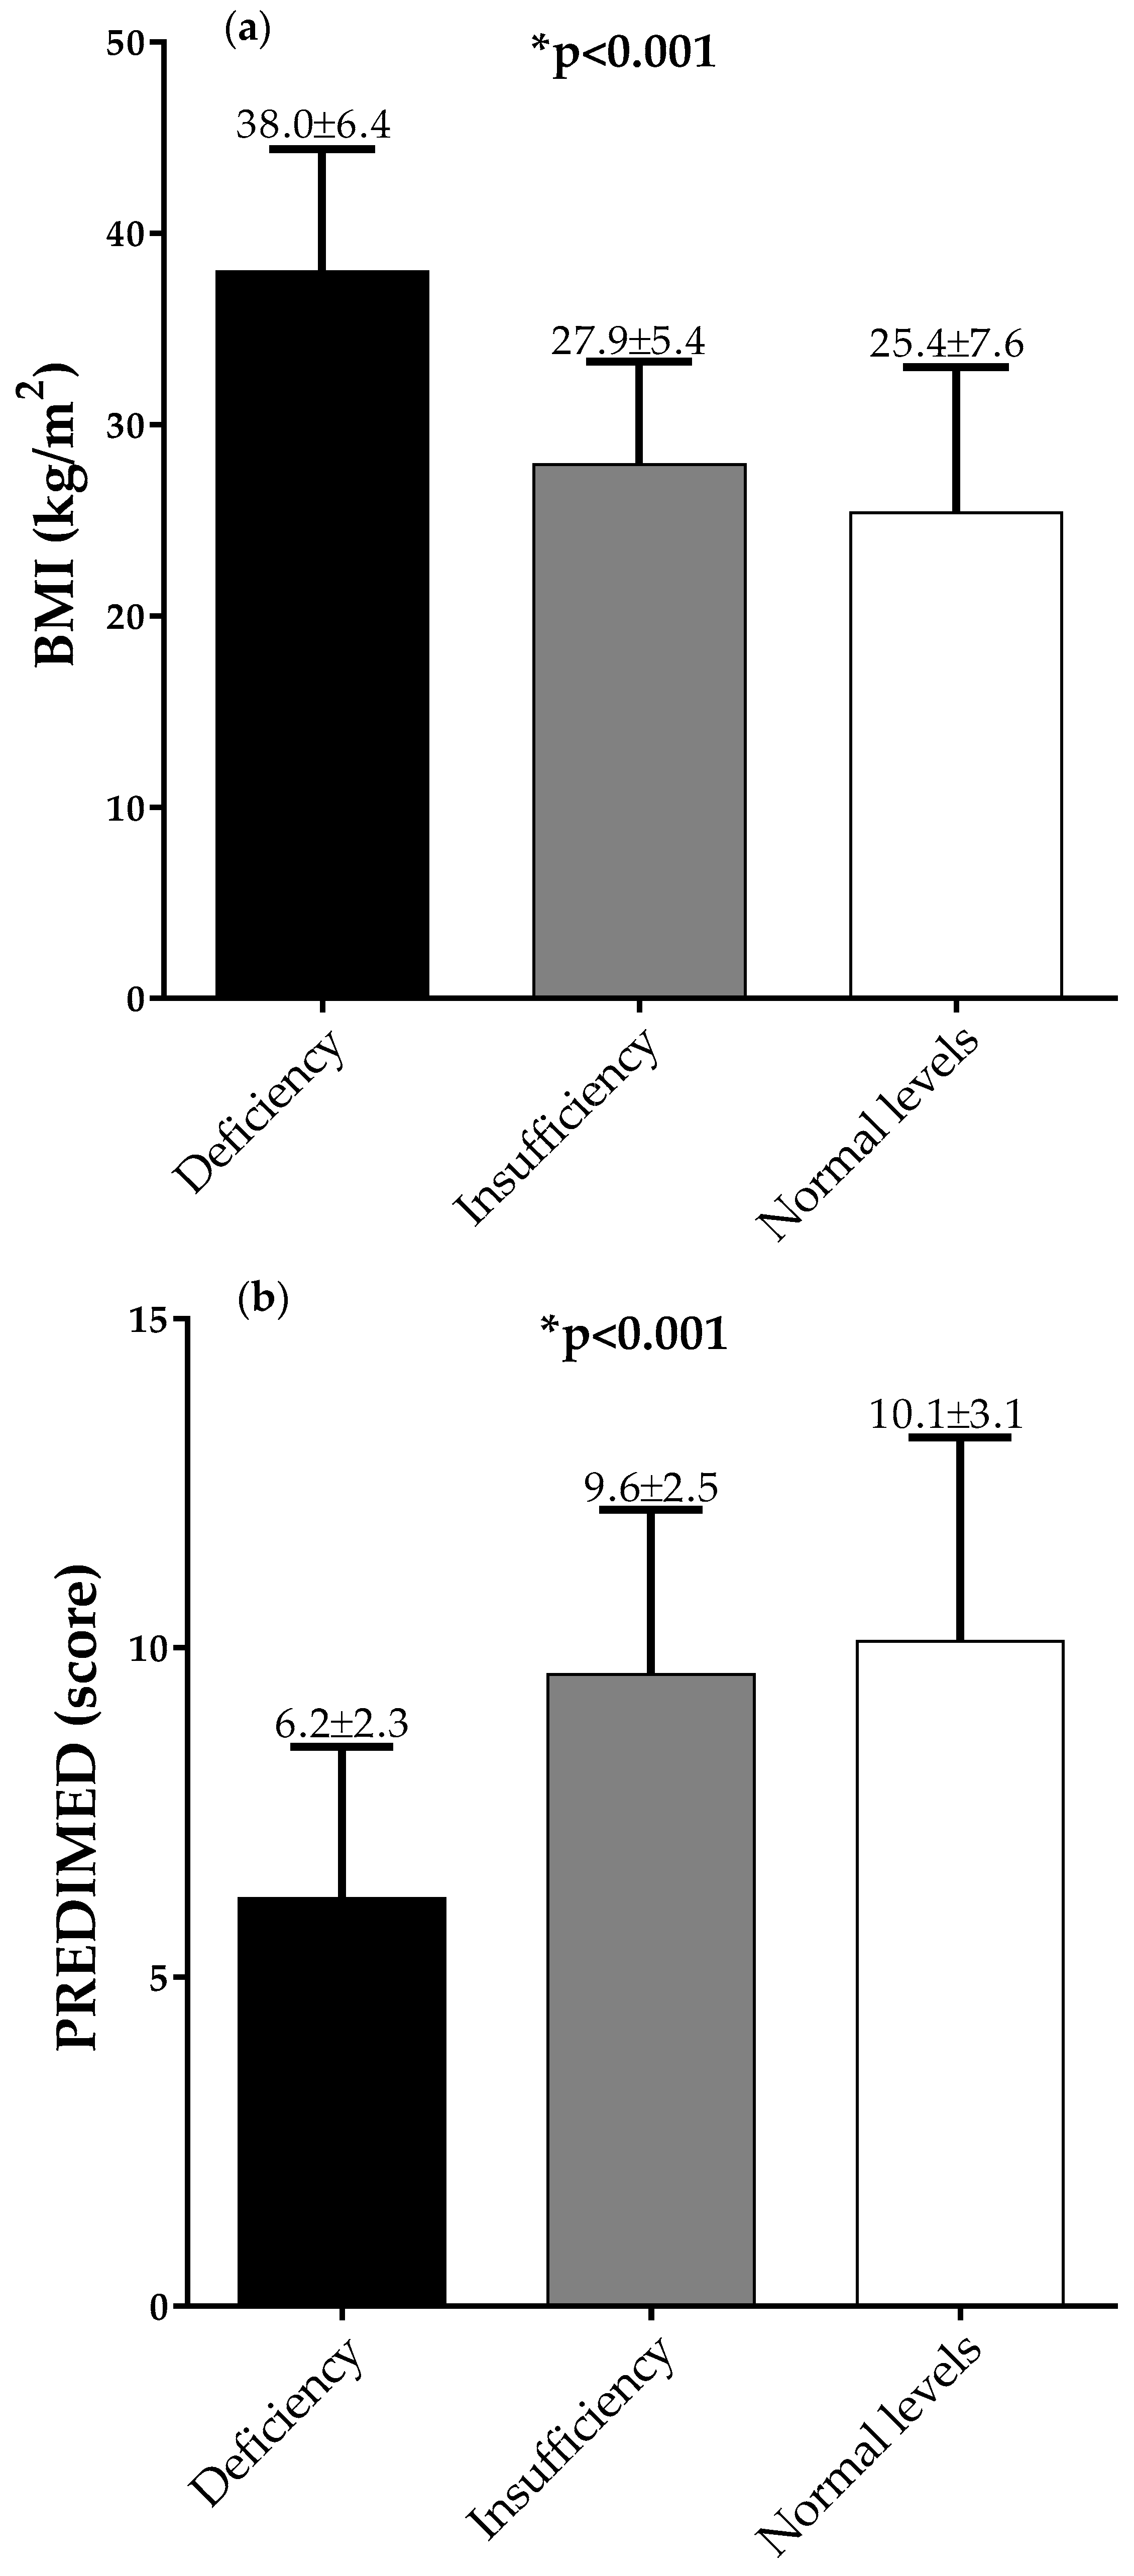 Nutrients Free Full Text Influence Of The Mediterranean Diet On 25 Hydroxyvitamin D Levels In Adults Html